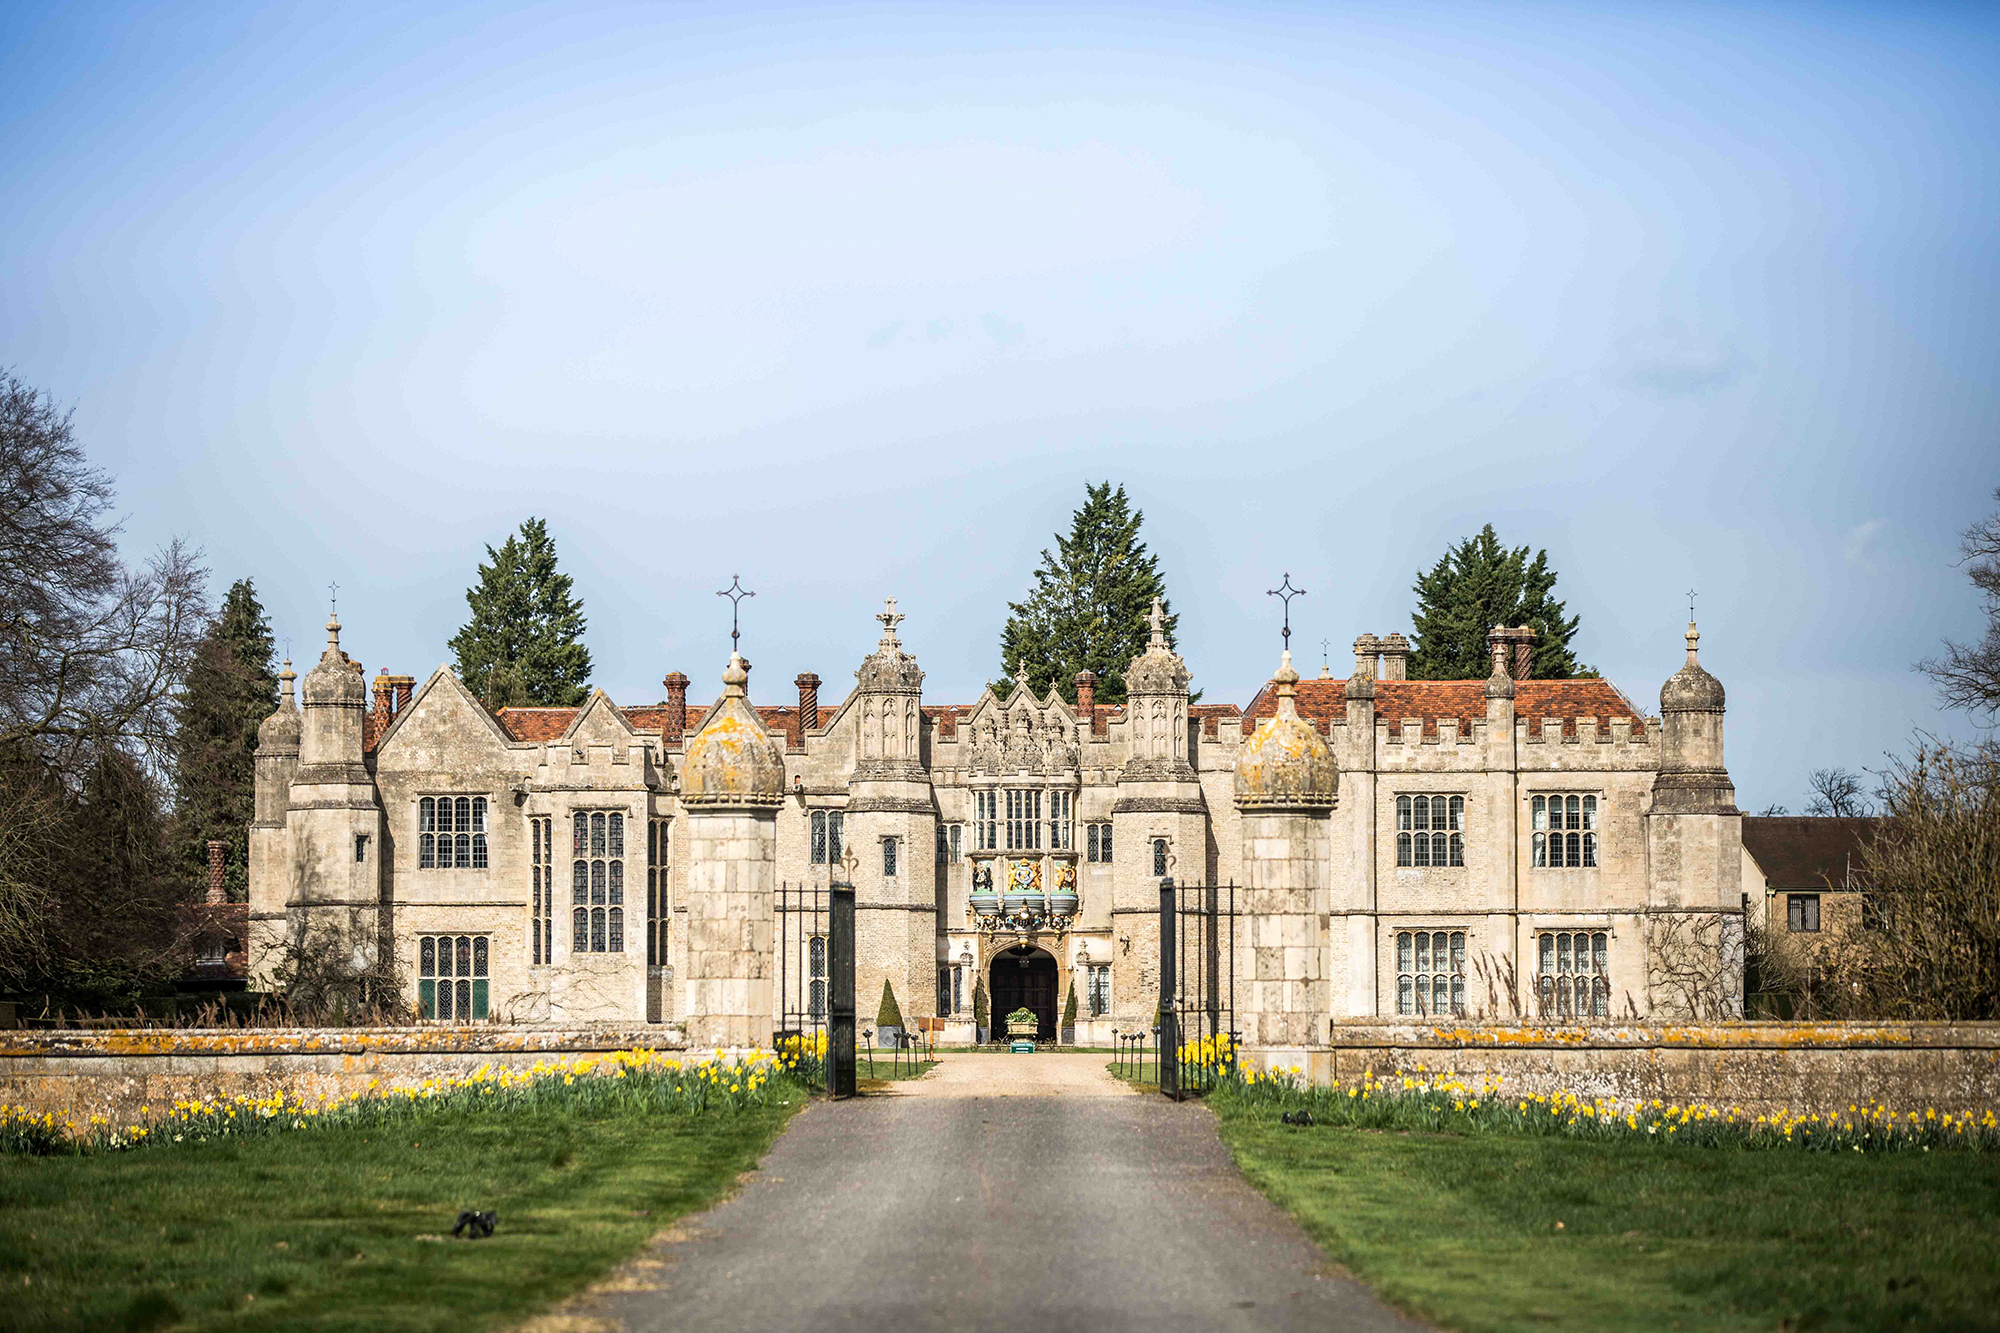 Hengrave Hall from the main entrance driveway